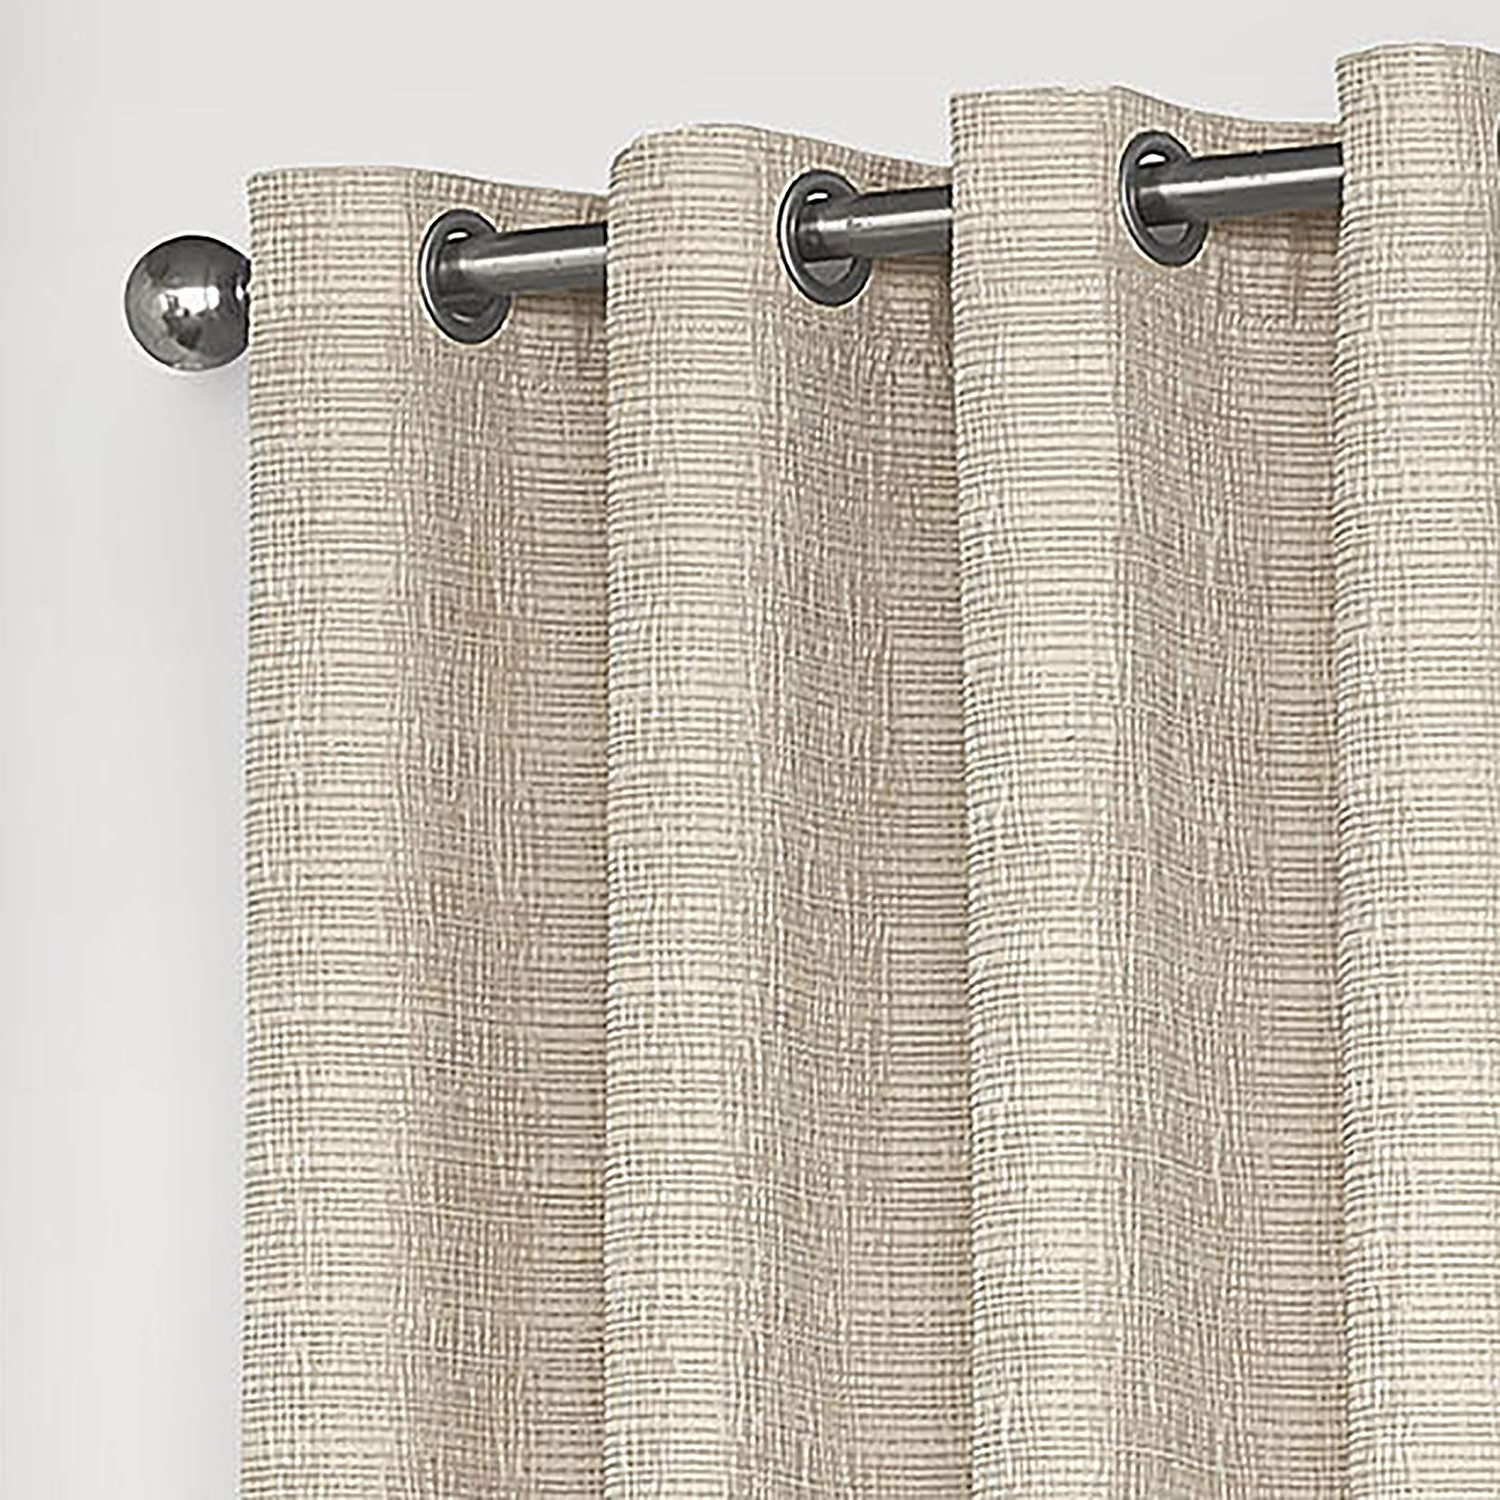 "Eclipse Trevi Classic Grommet Single Window Curtain Panel 52"" X 63"" Natural Throughout Fashionable Eclipse Trevi Blackout Grommet Window Curtain Panels (View 9 of 20)"